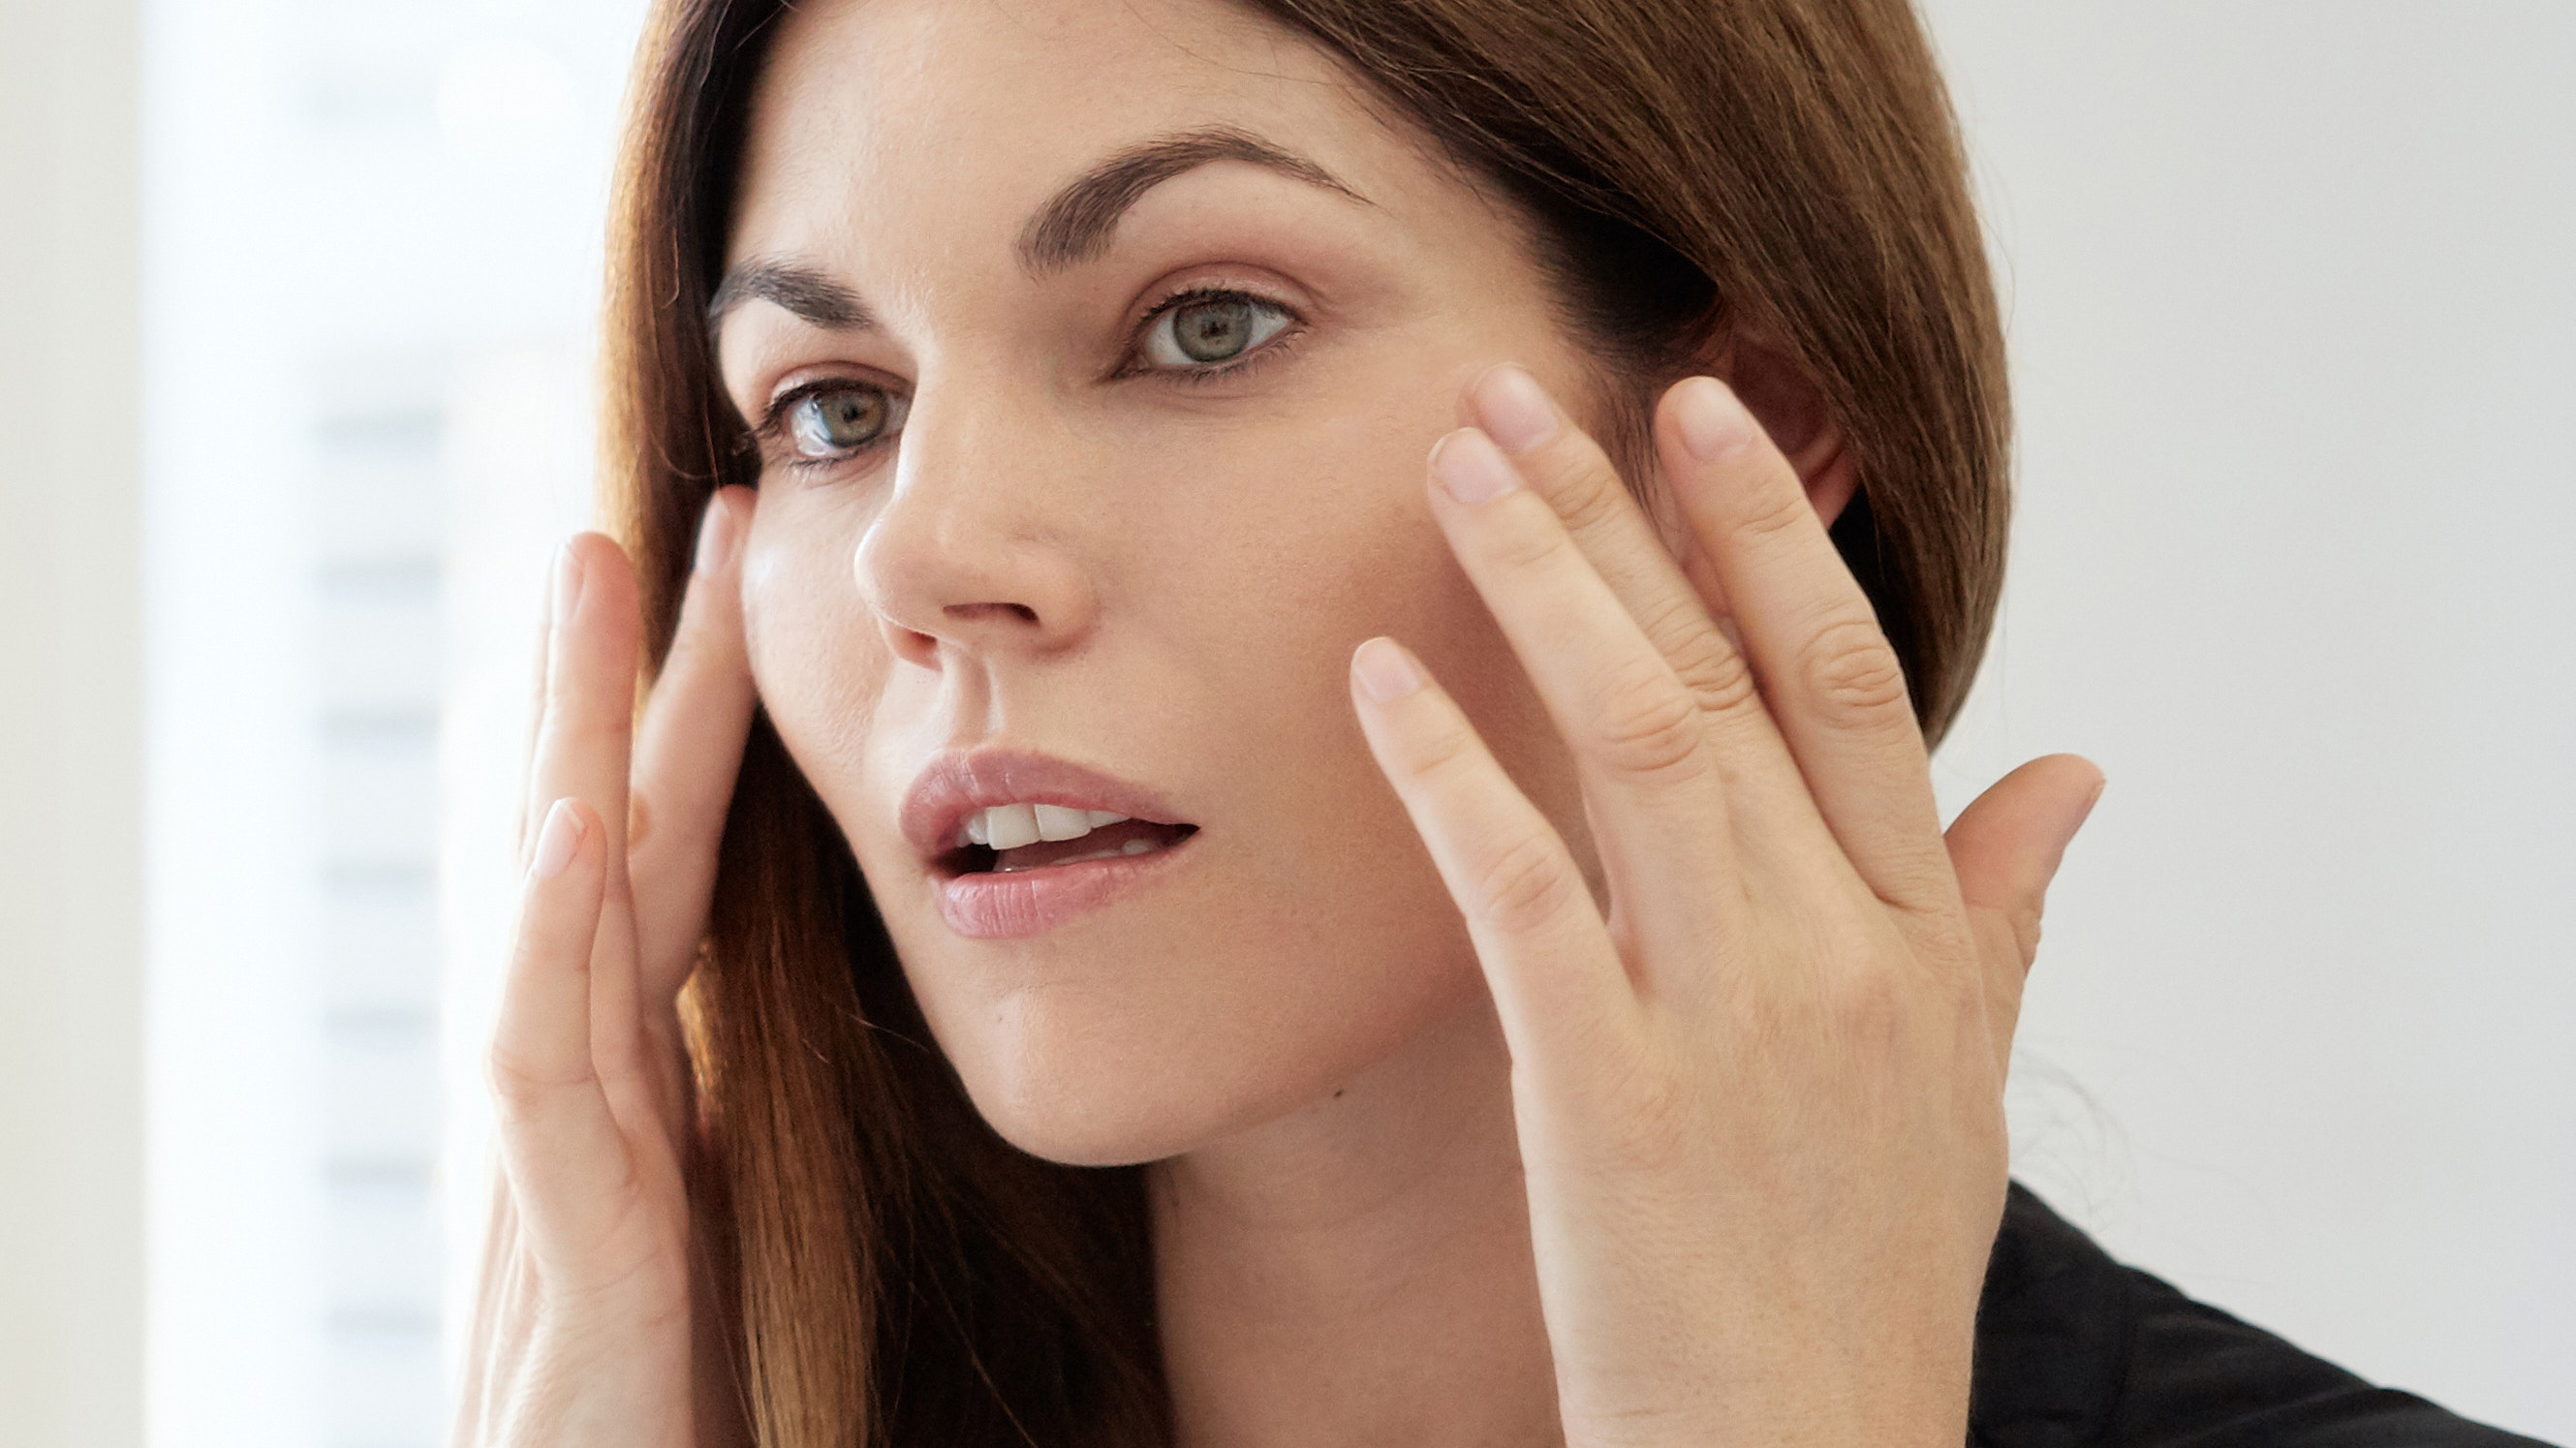 Your Skin Might Just Be Sensitized, Not Sensitive — This Is the Big Difference Between the Two